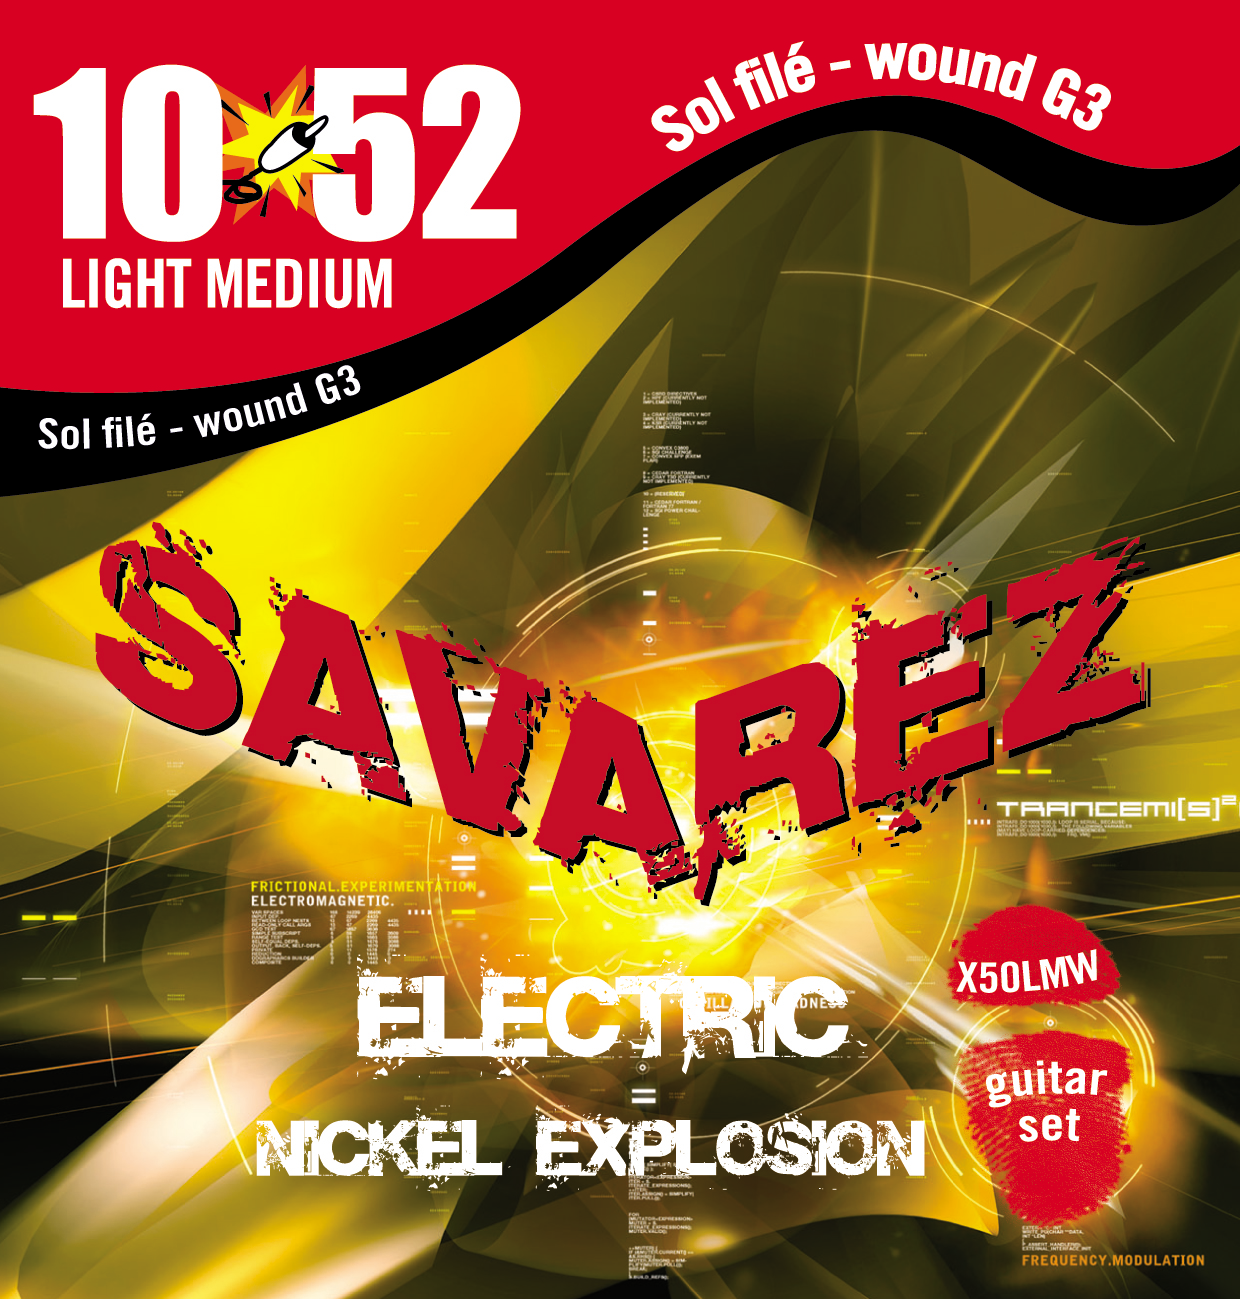 SAVAREZ ELECTRIC EXPLOSION X50LMW